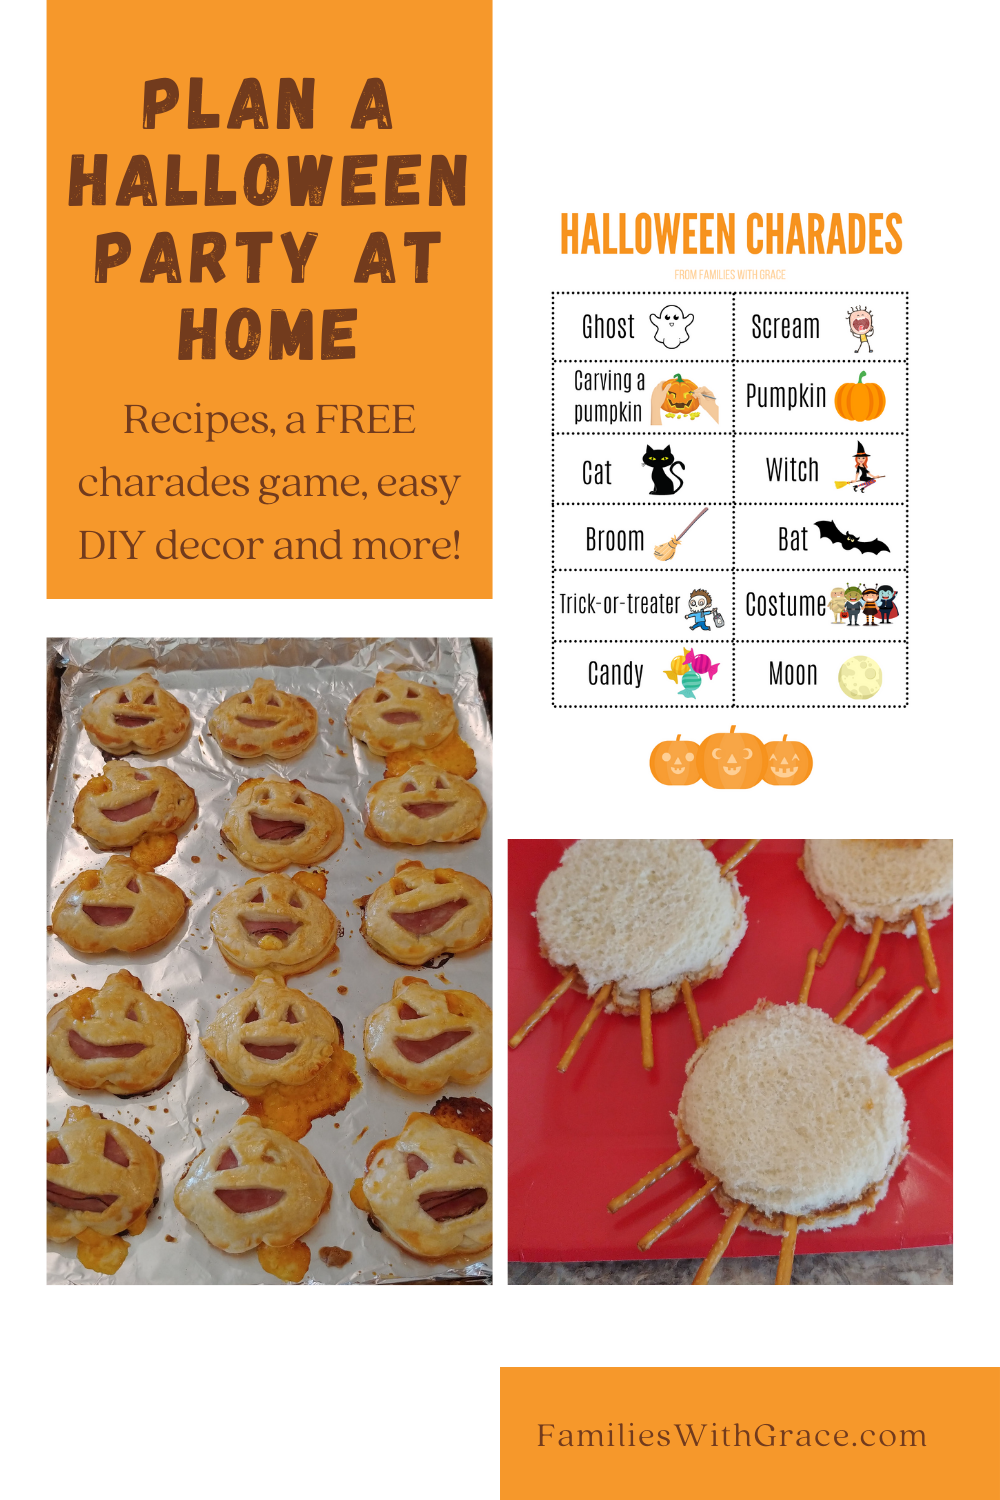 Plan a Halloween party at home (with recipes and FREE Halloween charades!)